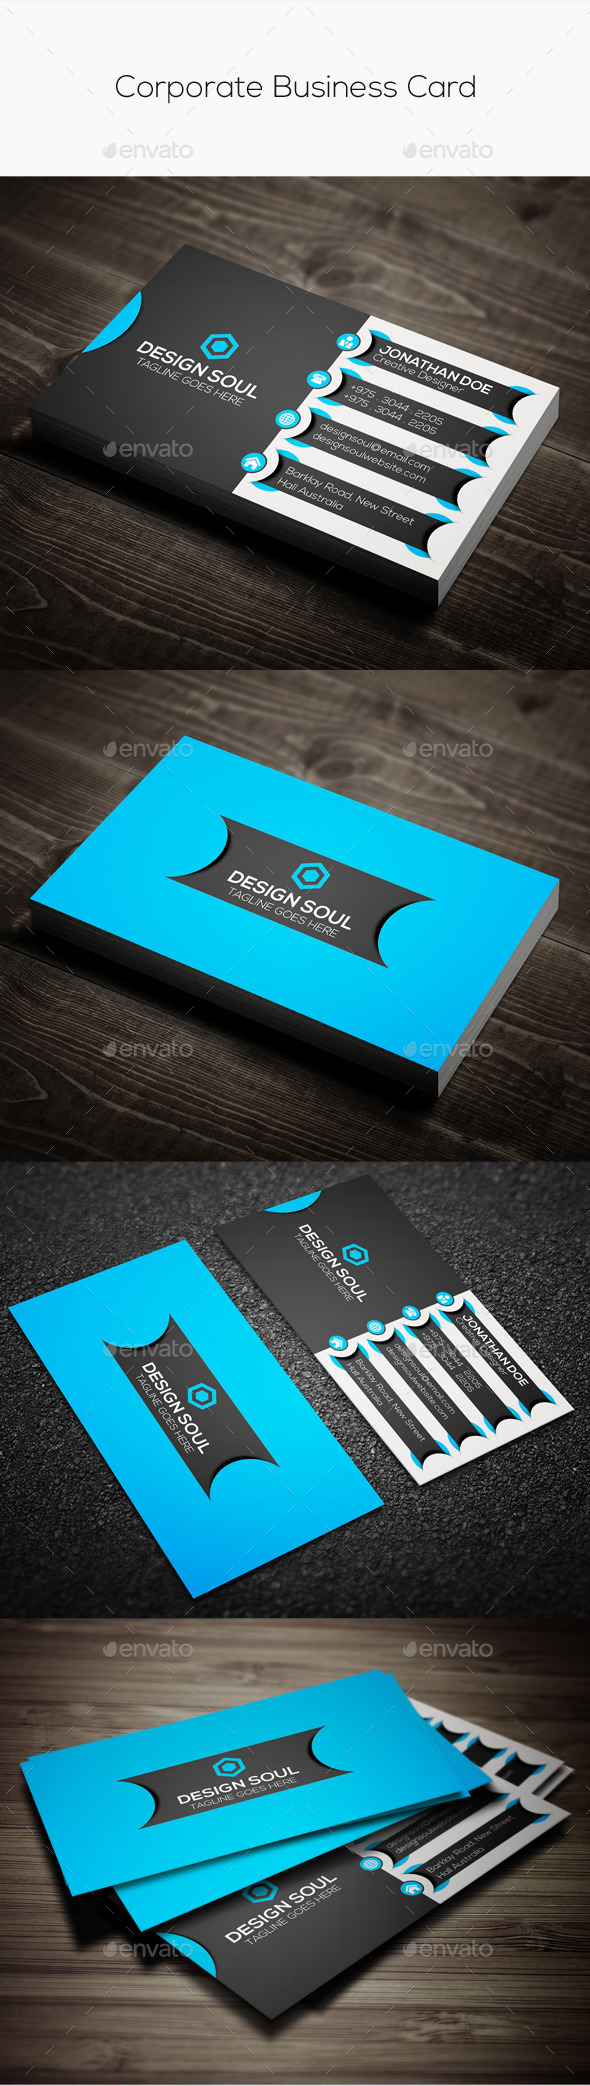 GraphicRiver Corporate Business Card 9697330